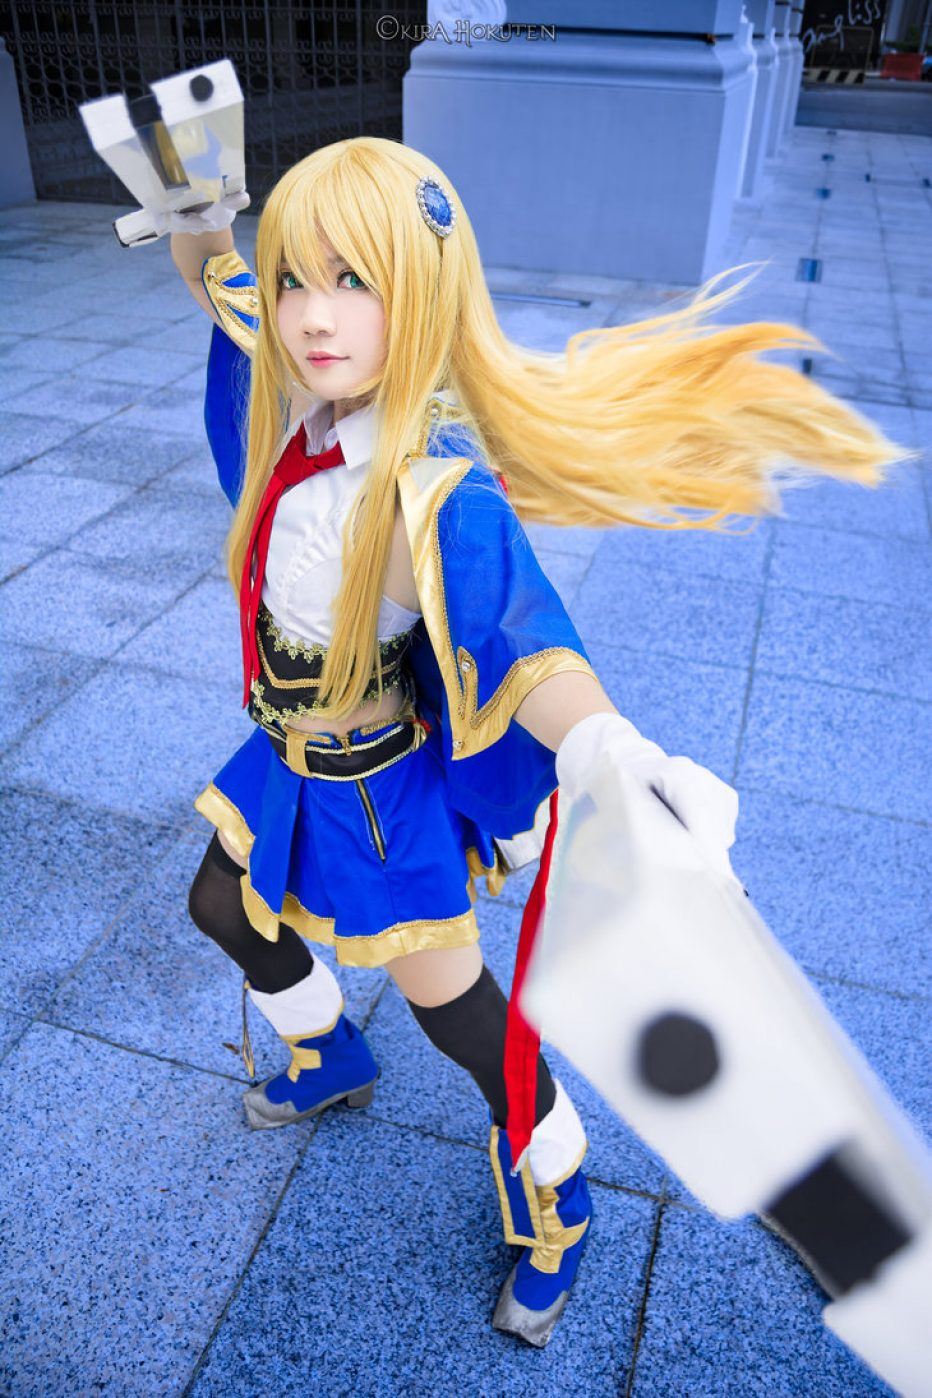 Blazblue-Noel-Vermillion-Cosplay-Gamers-Heroes-1.jpg